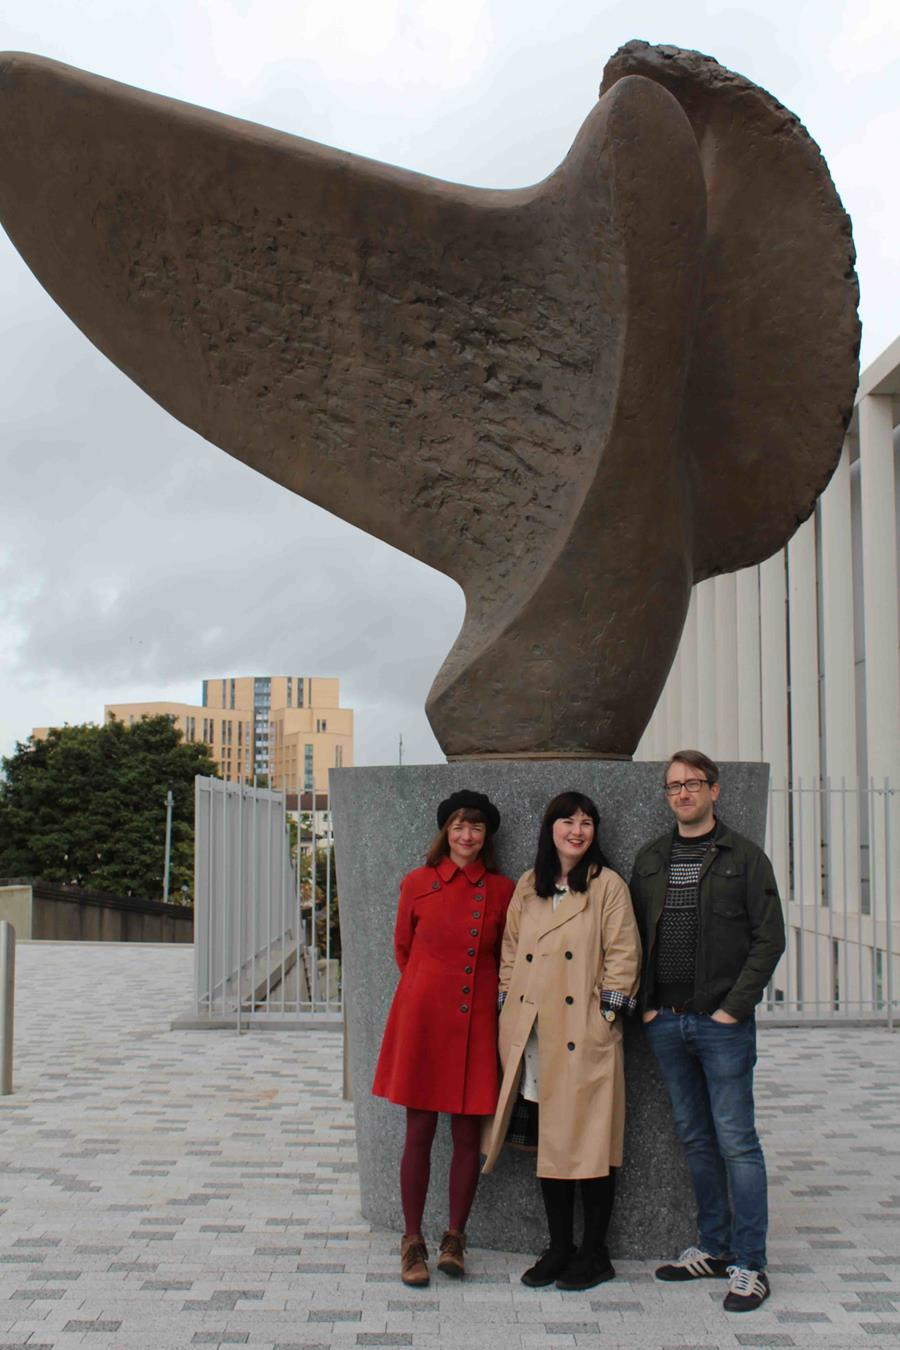 Kate standing next to a sculpture with 2 others